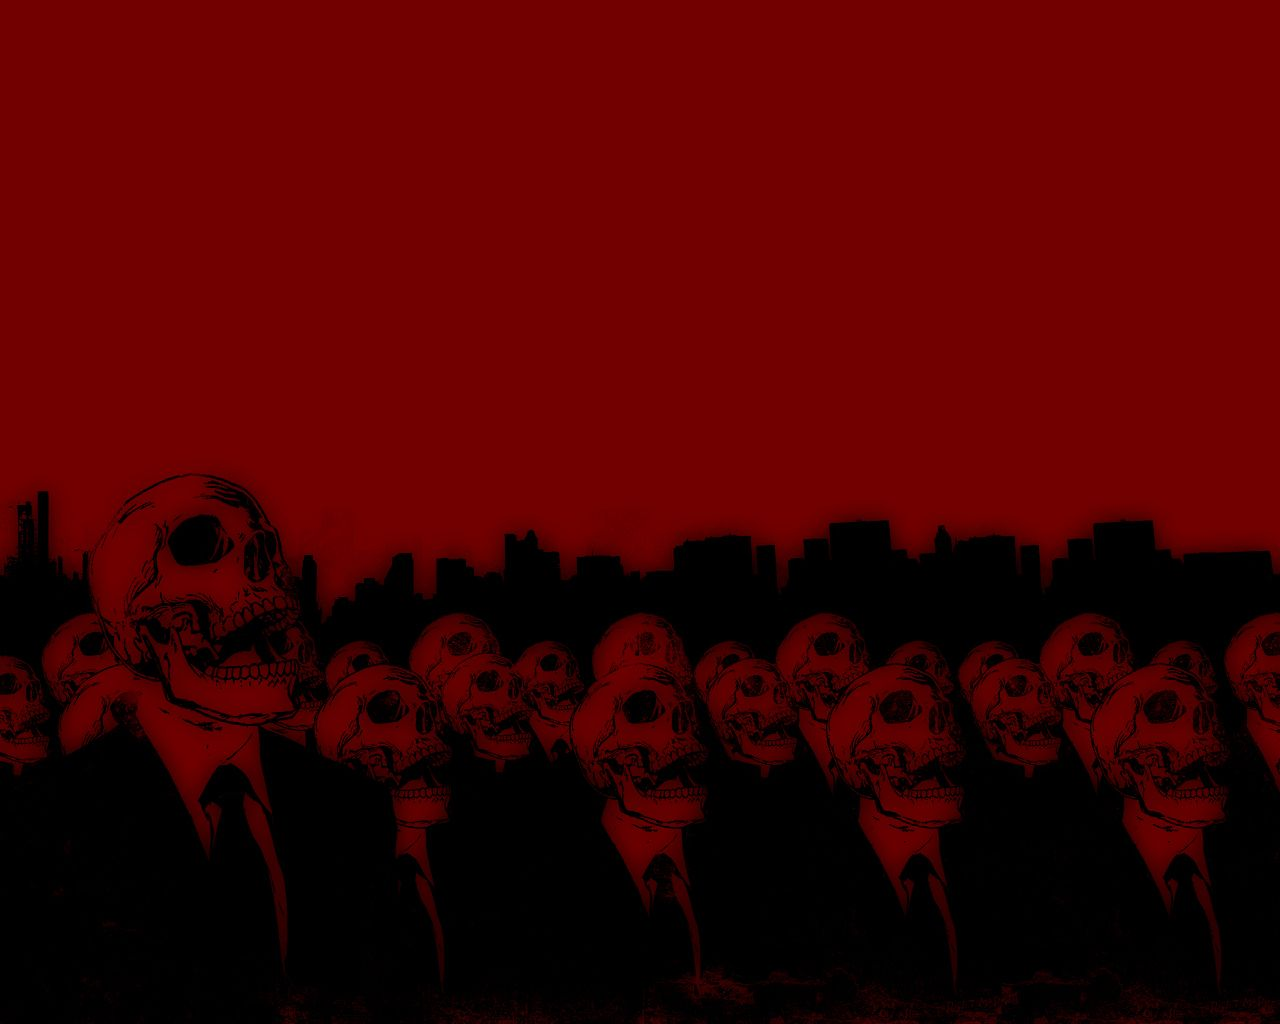 Red Skull Android Central 1280 1024 Red And Black Skull Wallpapers